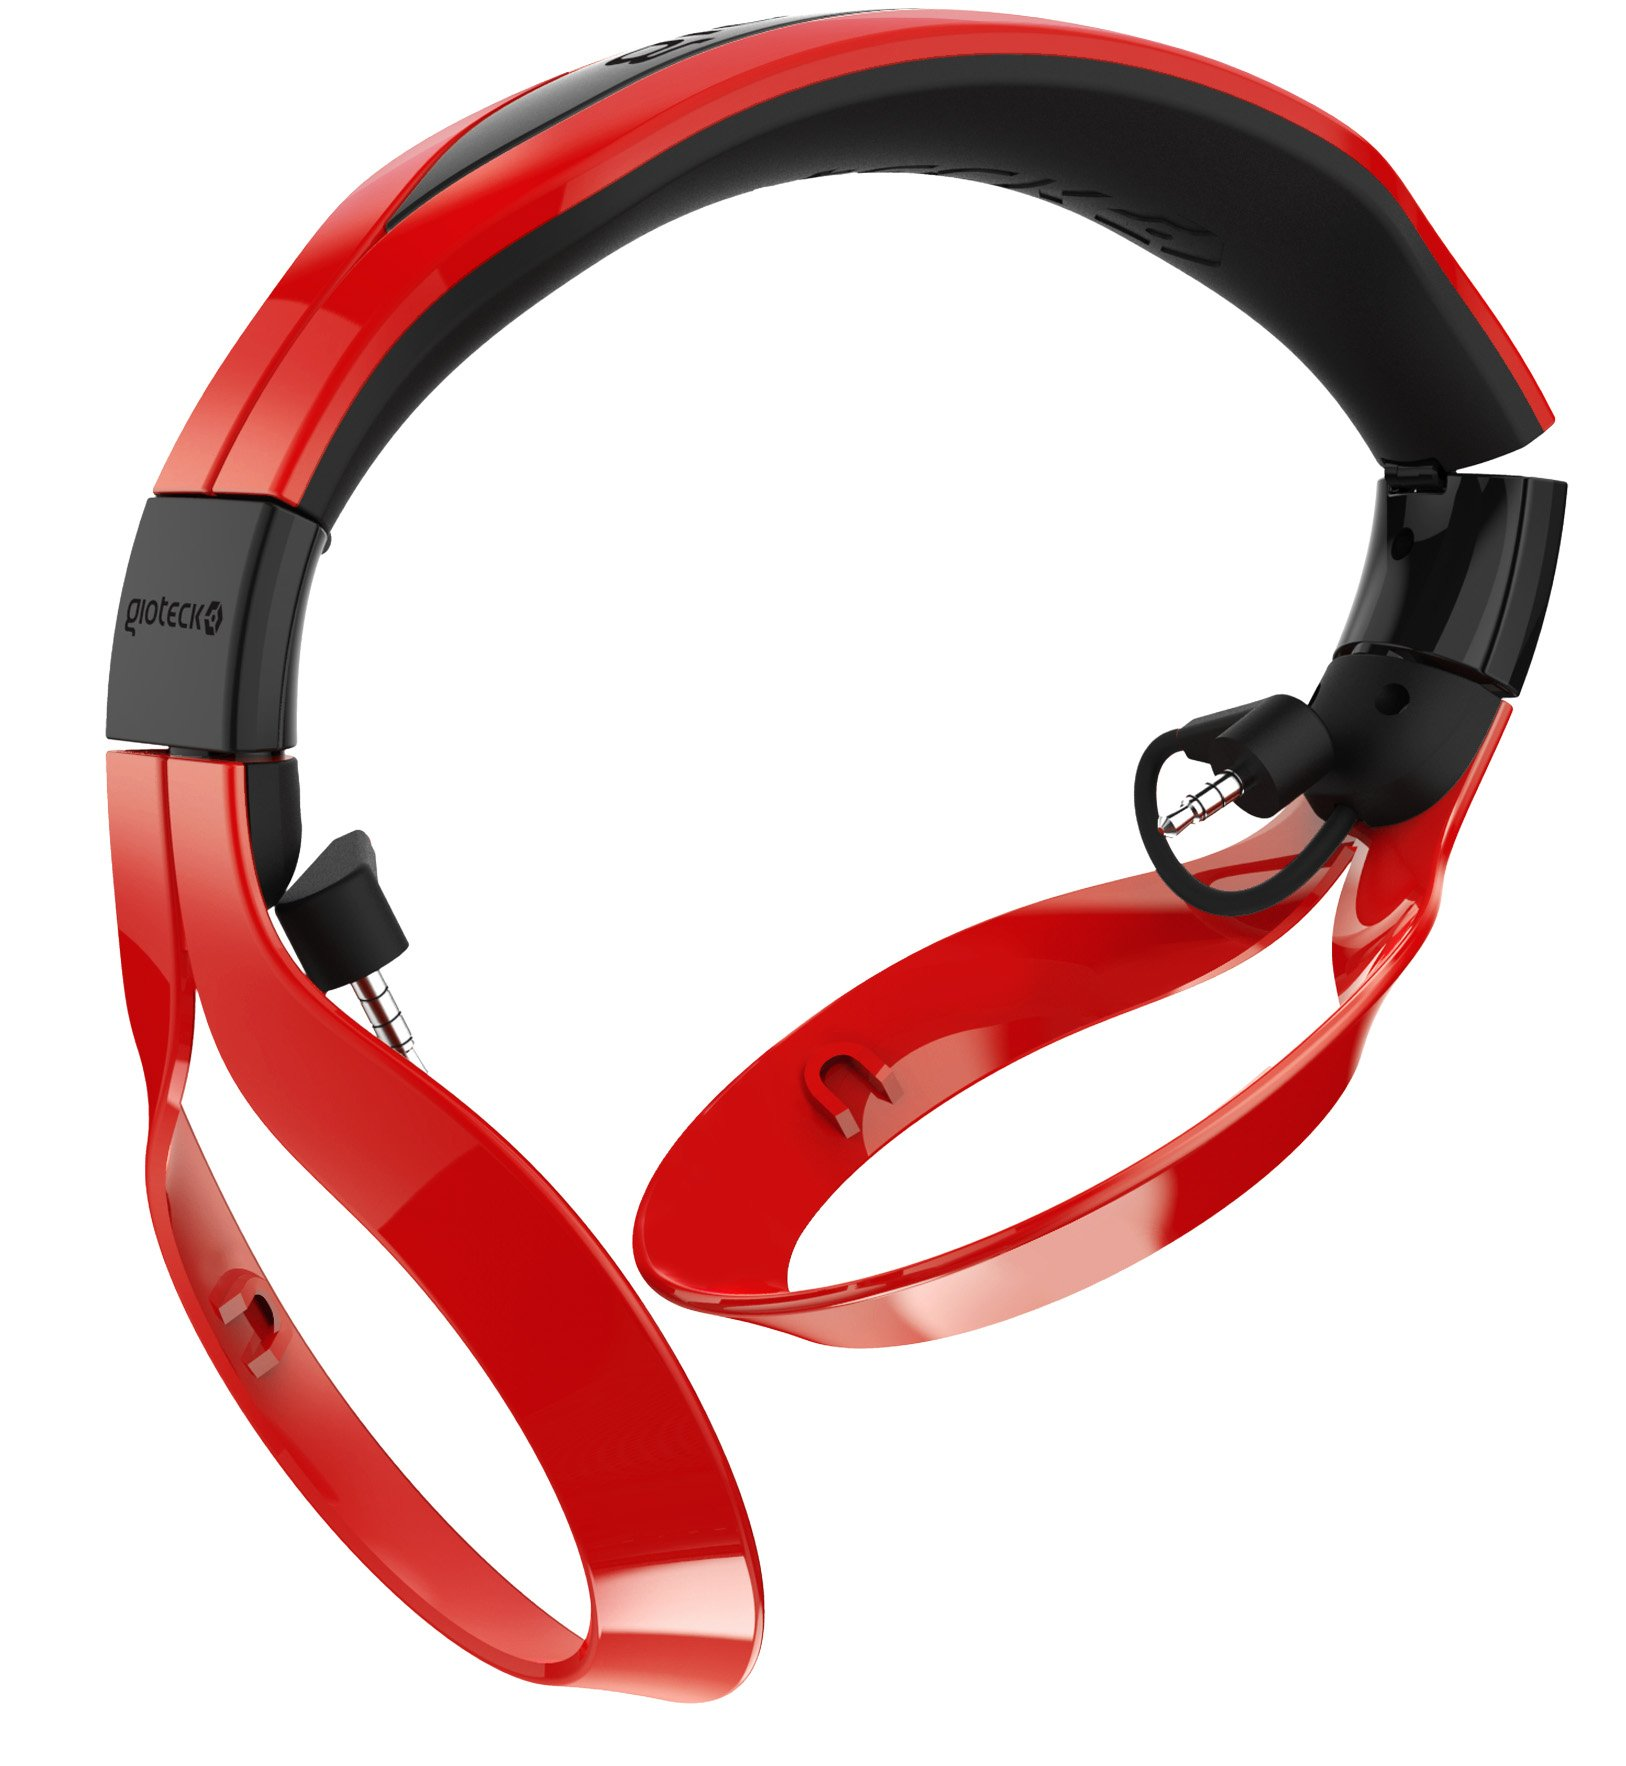 Gioteck FL-300 Wired Stereo Headset with Removable Bluetooth Speakers - PlayStation 4 - Red by Gioteck (Image #4)